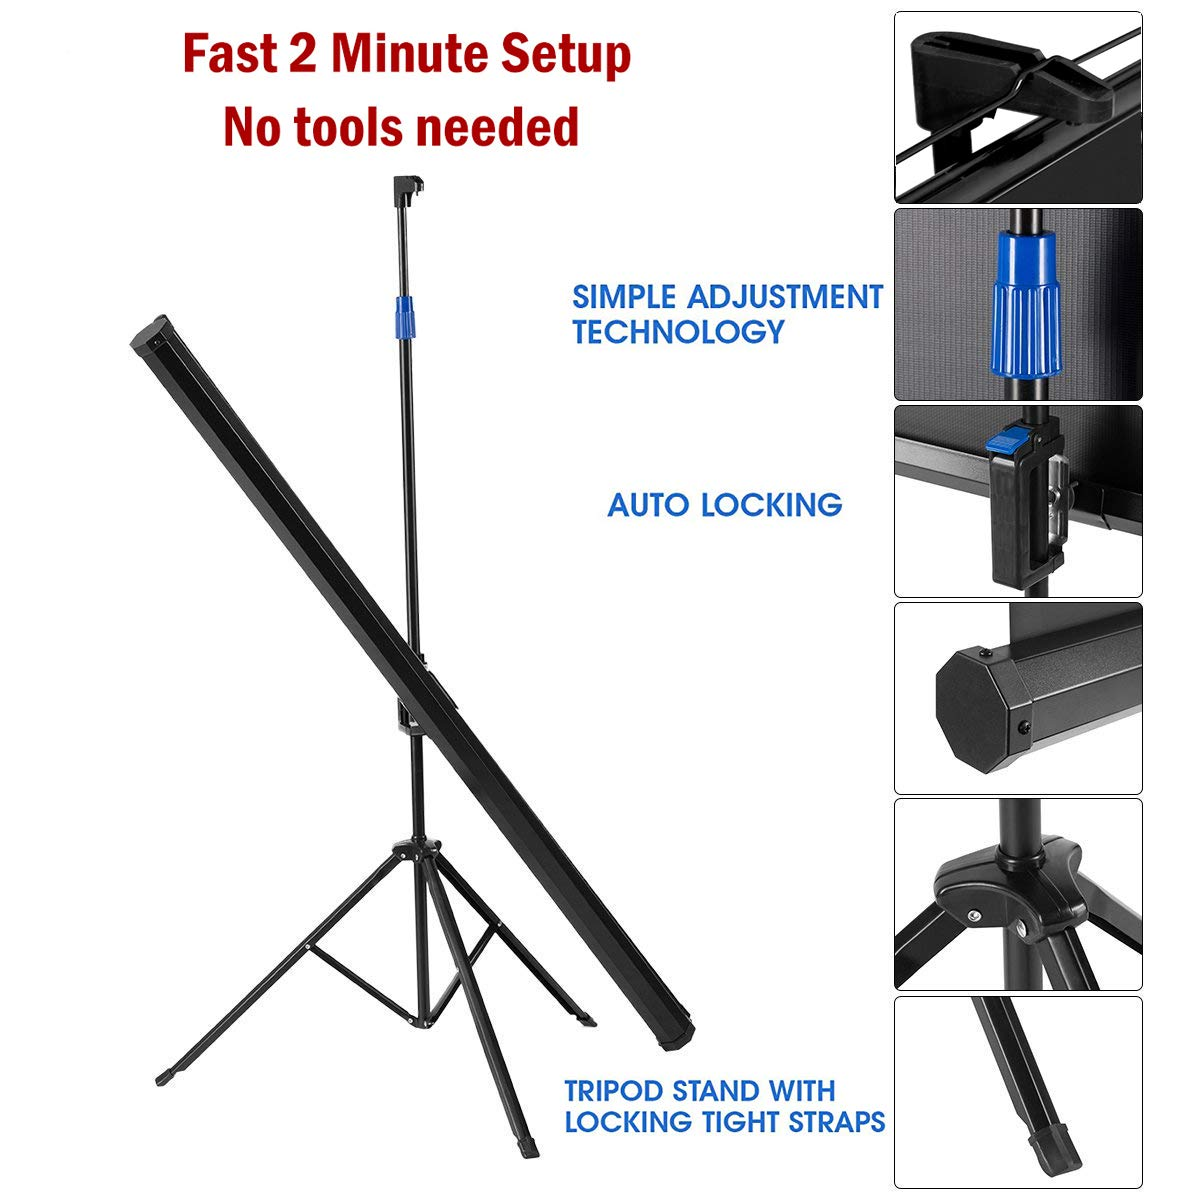 Projector Screen with Stand 84 inch Indoor and Outdoor Projection Screen for Movie or Office Presentation - 16:9 HD Premium Wrinkle-Free Portable Tripod Screen (Ease of Use, 160° Viewing Angle)